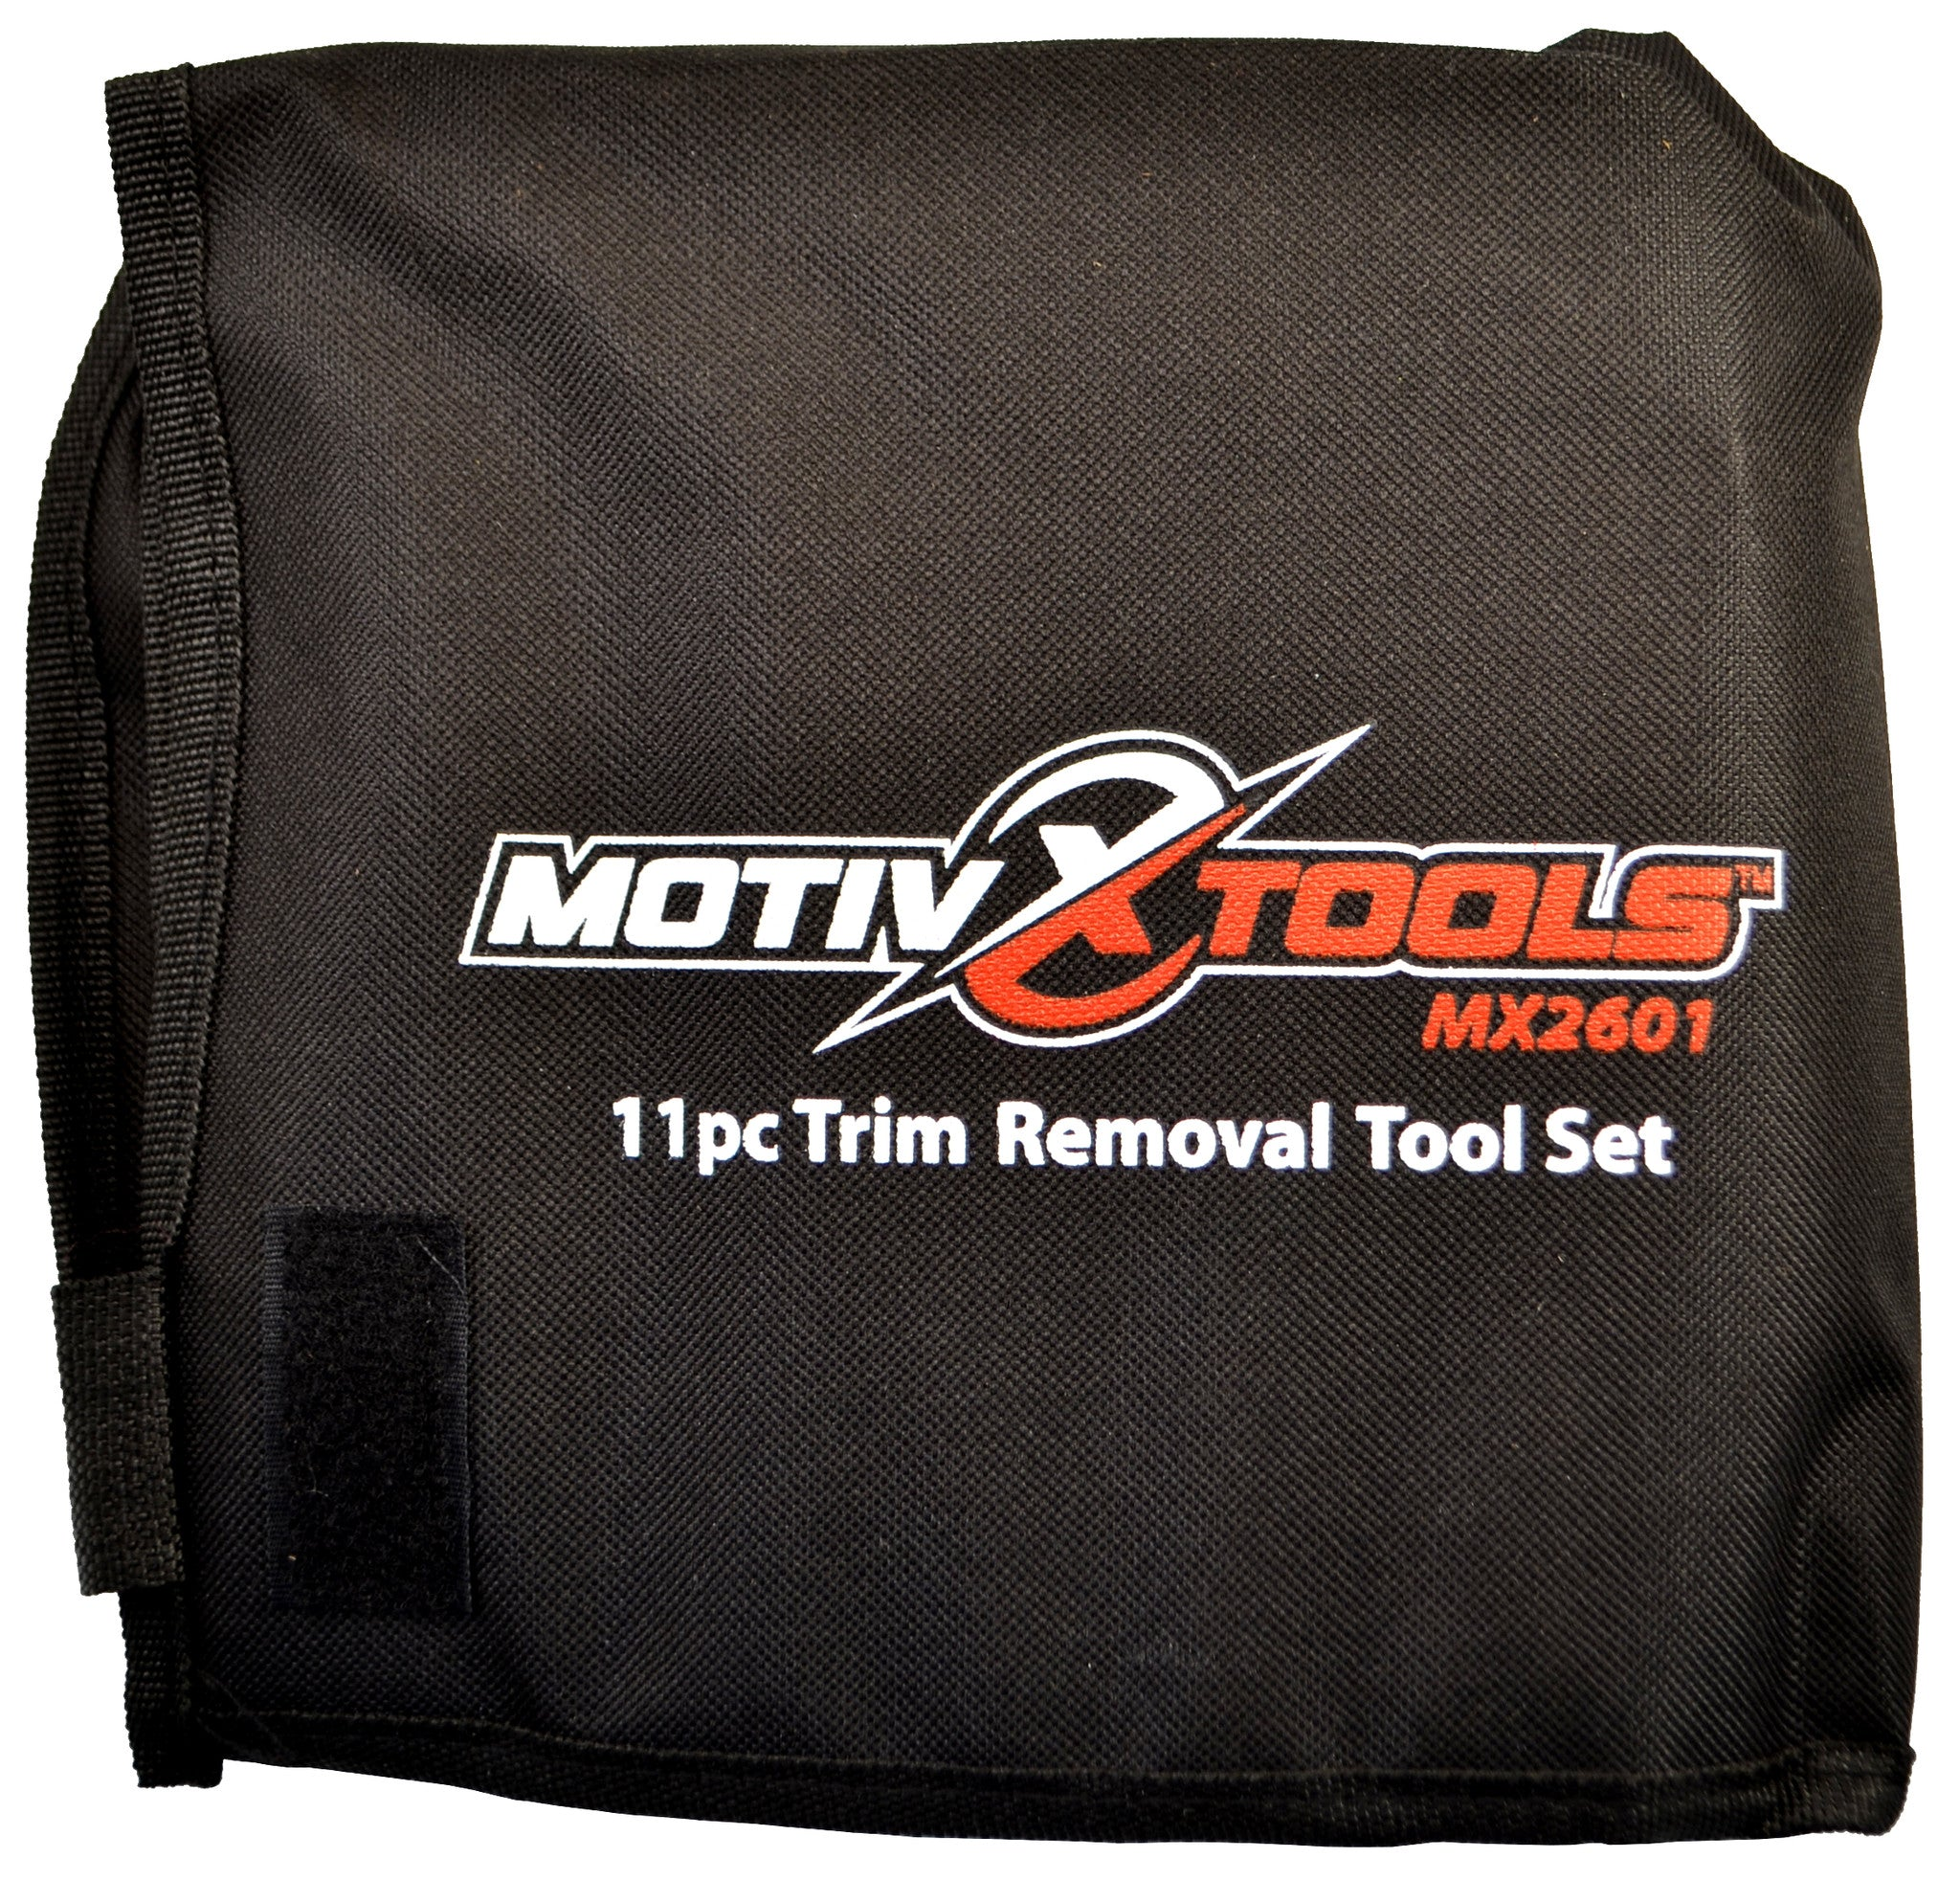 MX2601 Trim and Panel Removal Set Cover